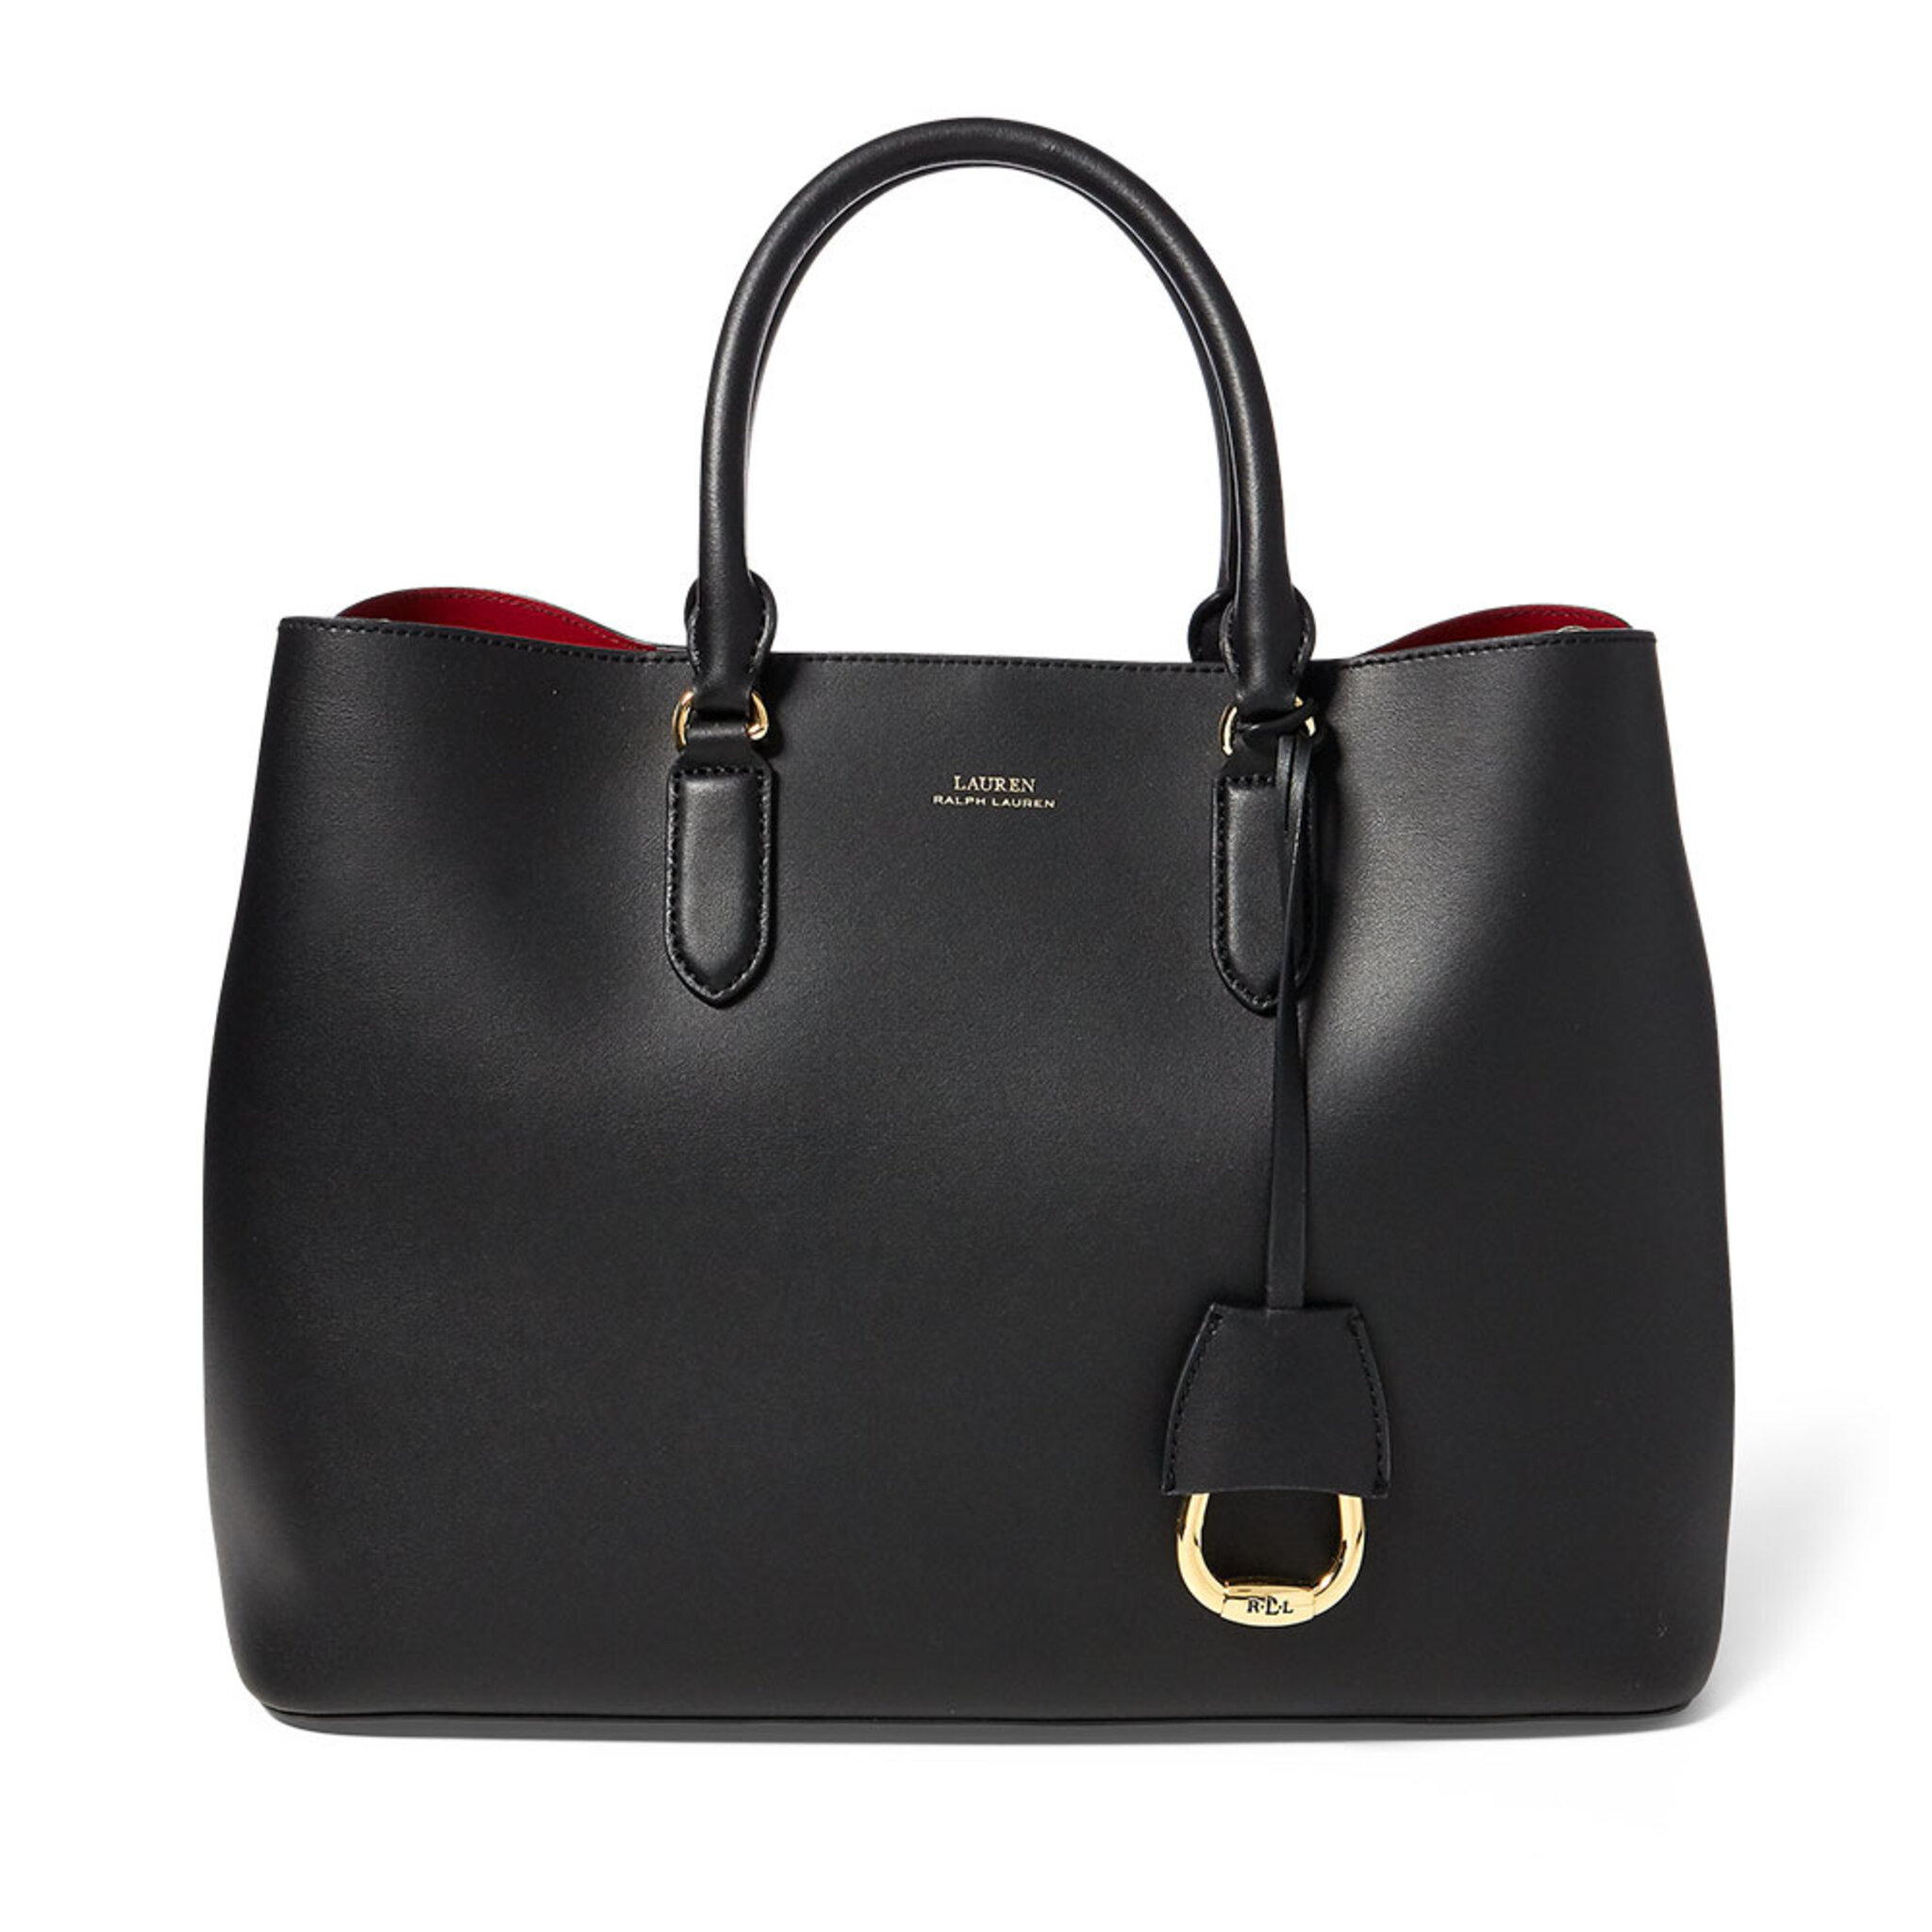 Marcy Leather Satchel, ONE SIZE, black